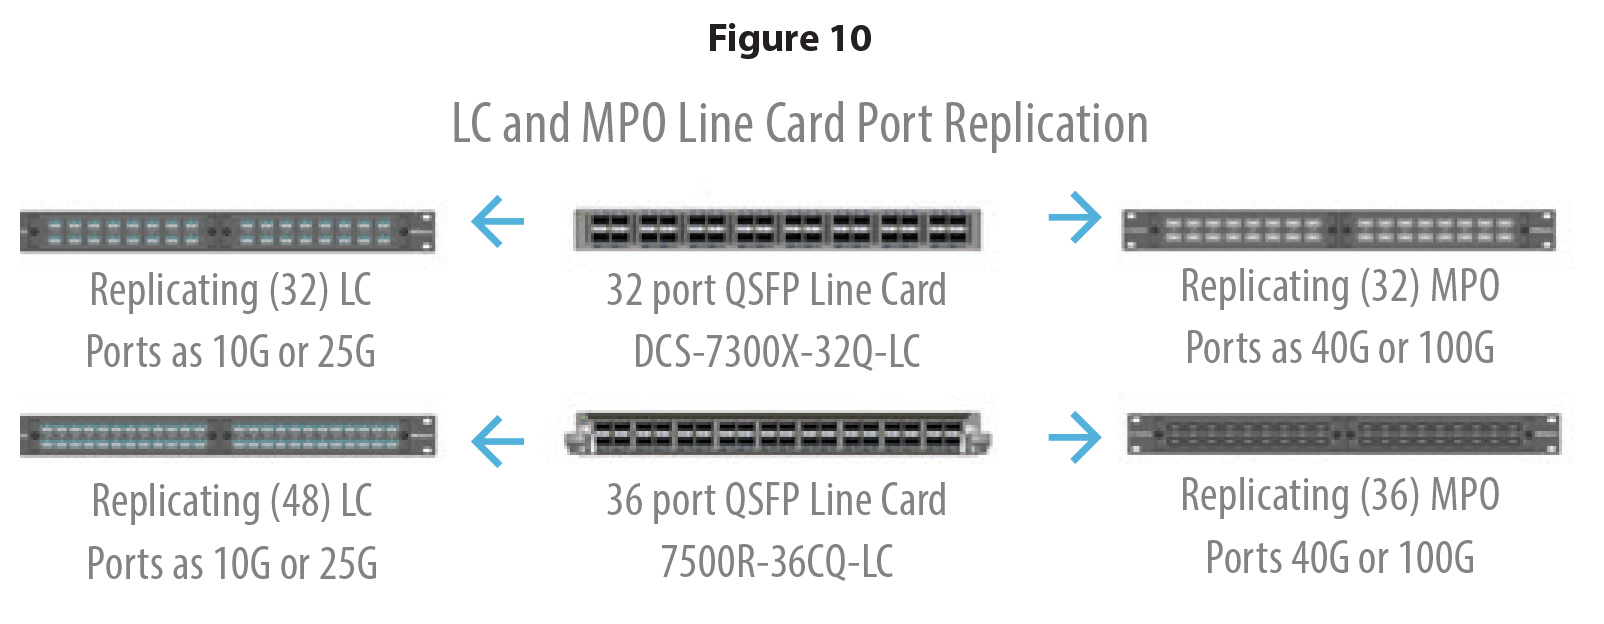 Arista Line Cards replicated using Multi-path system - cabling